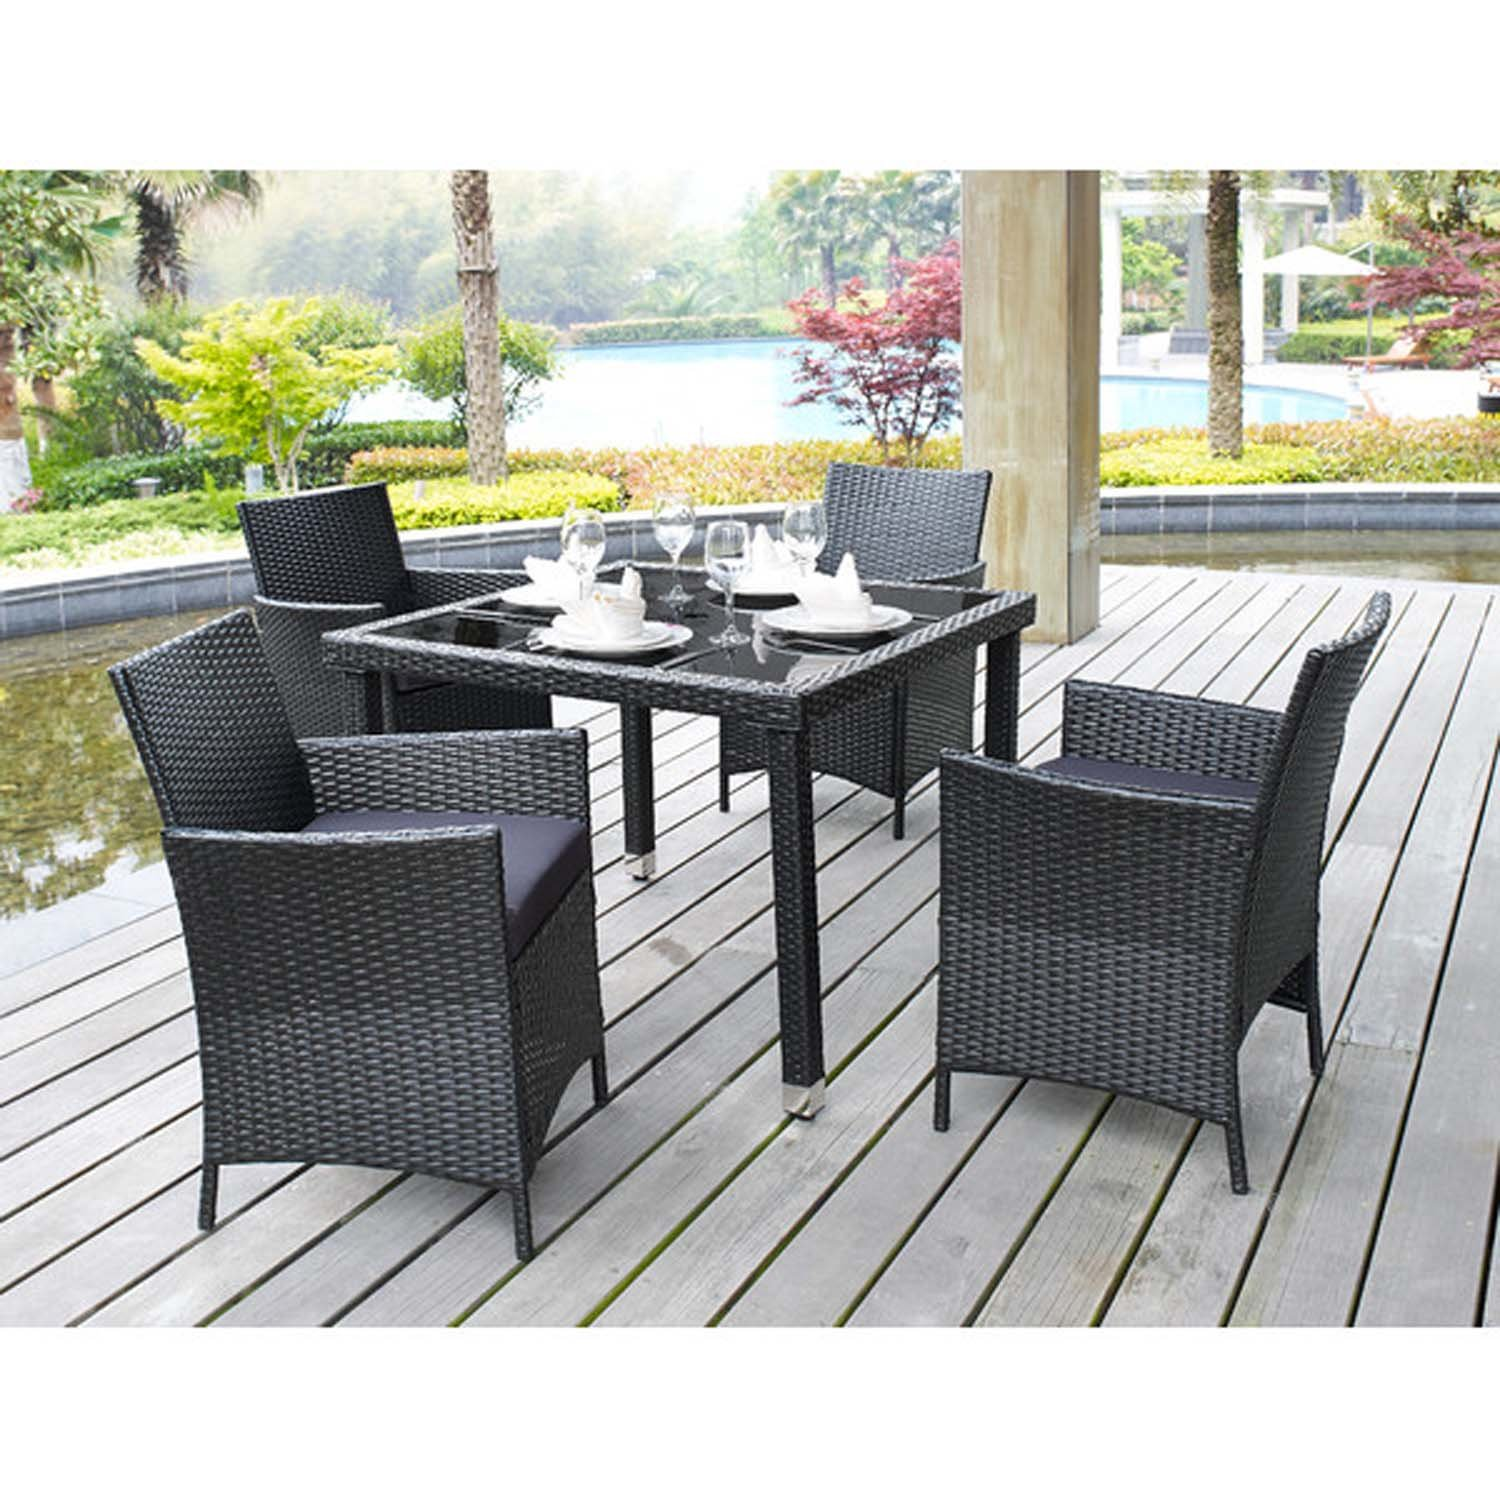 Amazon.com : 5 Piece Outdoor Patio Dining Set With Cushions   UV Weather  Resistant Rattan Wicker Heavy Duty Steel Powder Coated Furniture    Rectangular ...